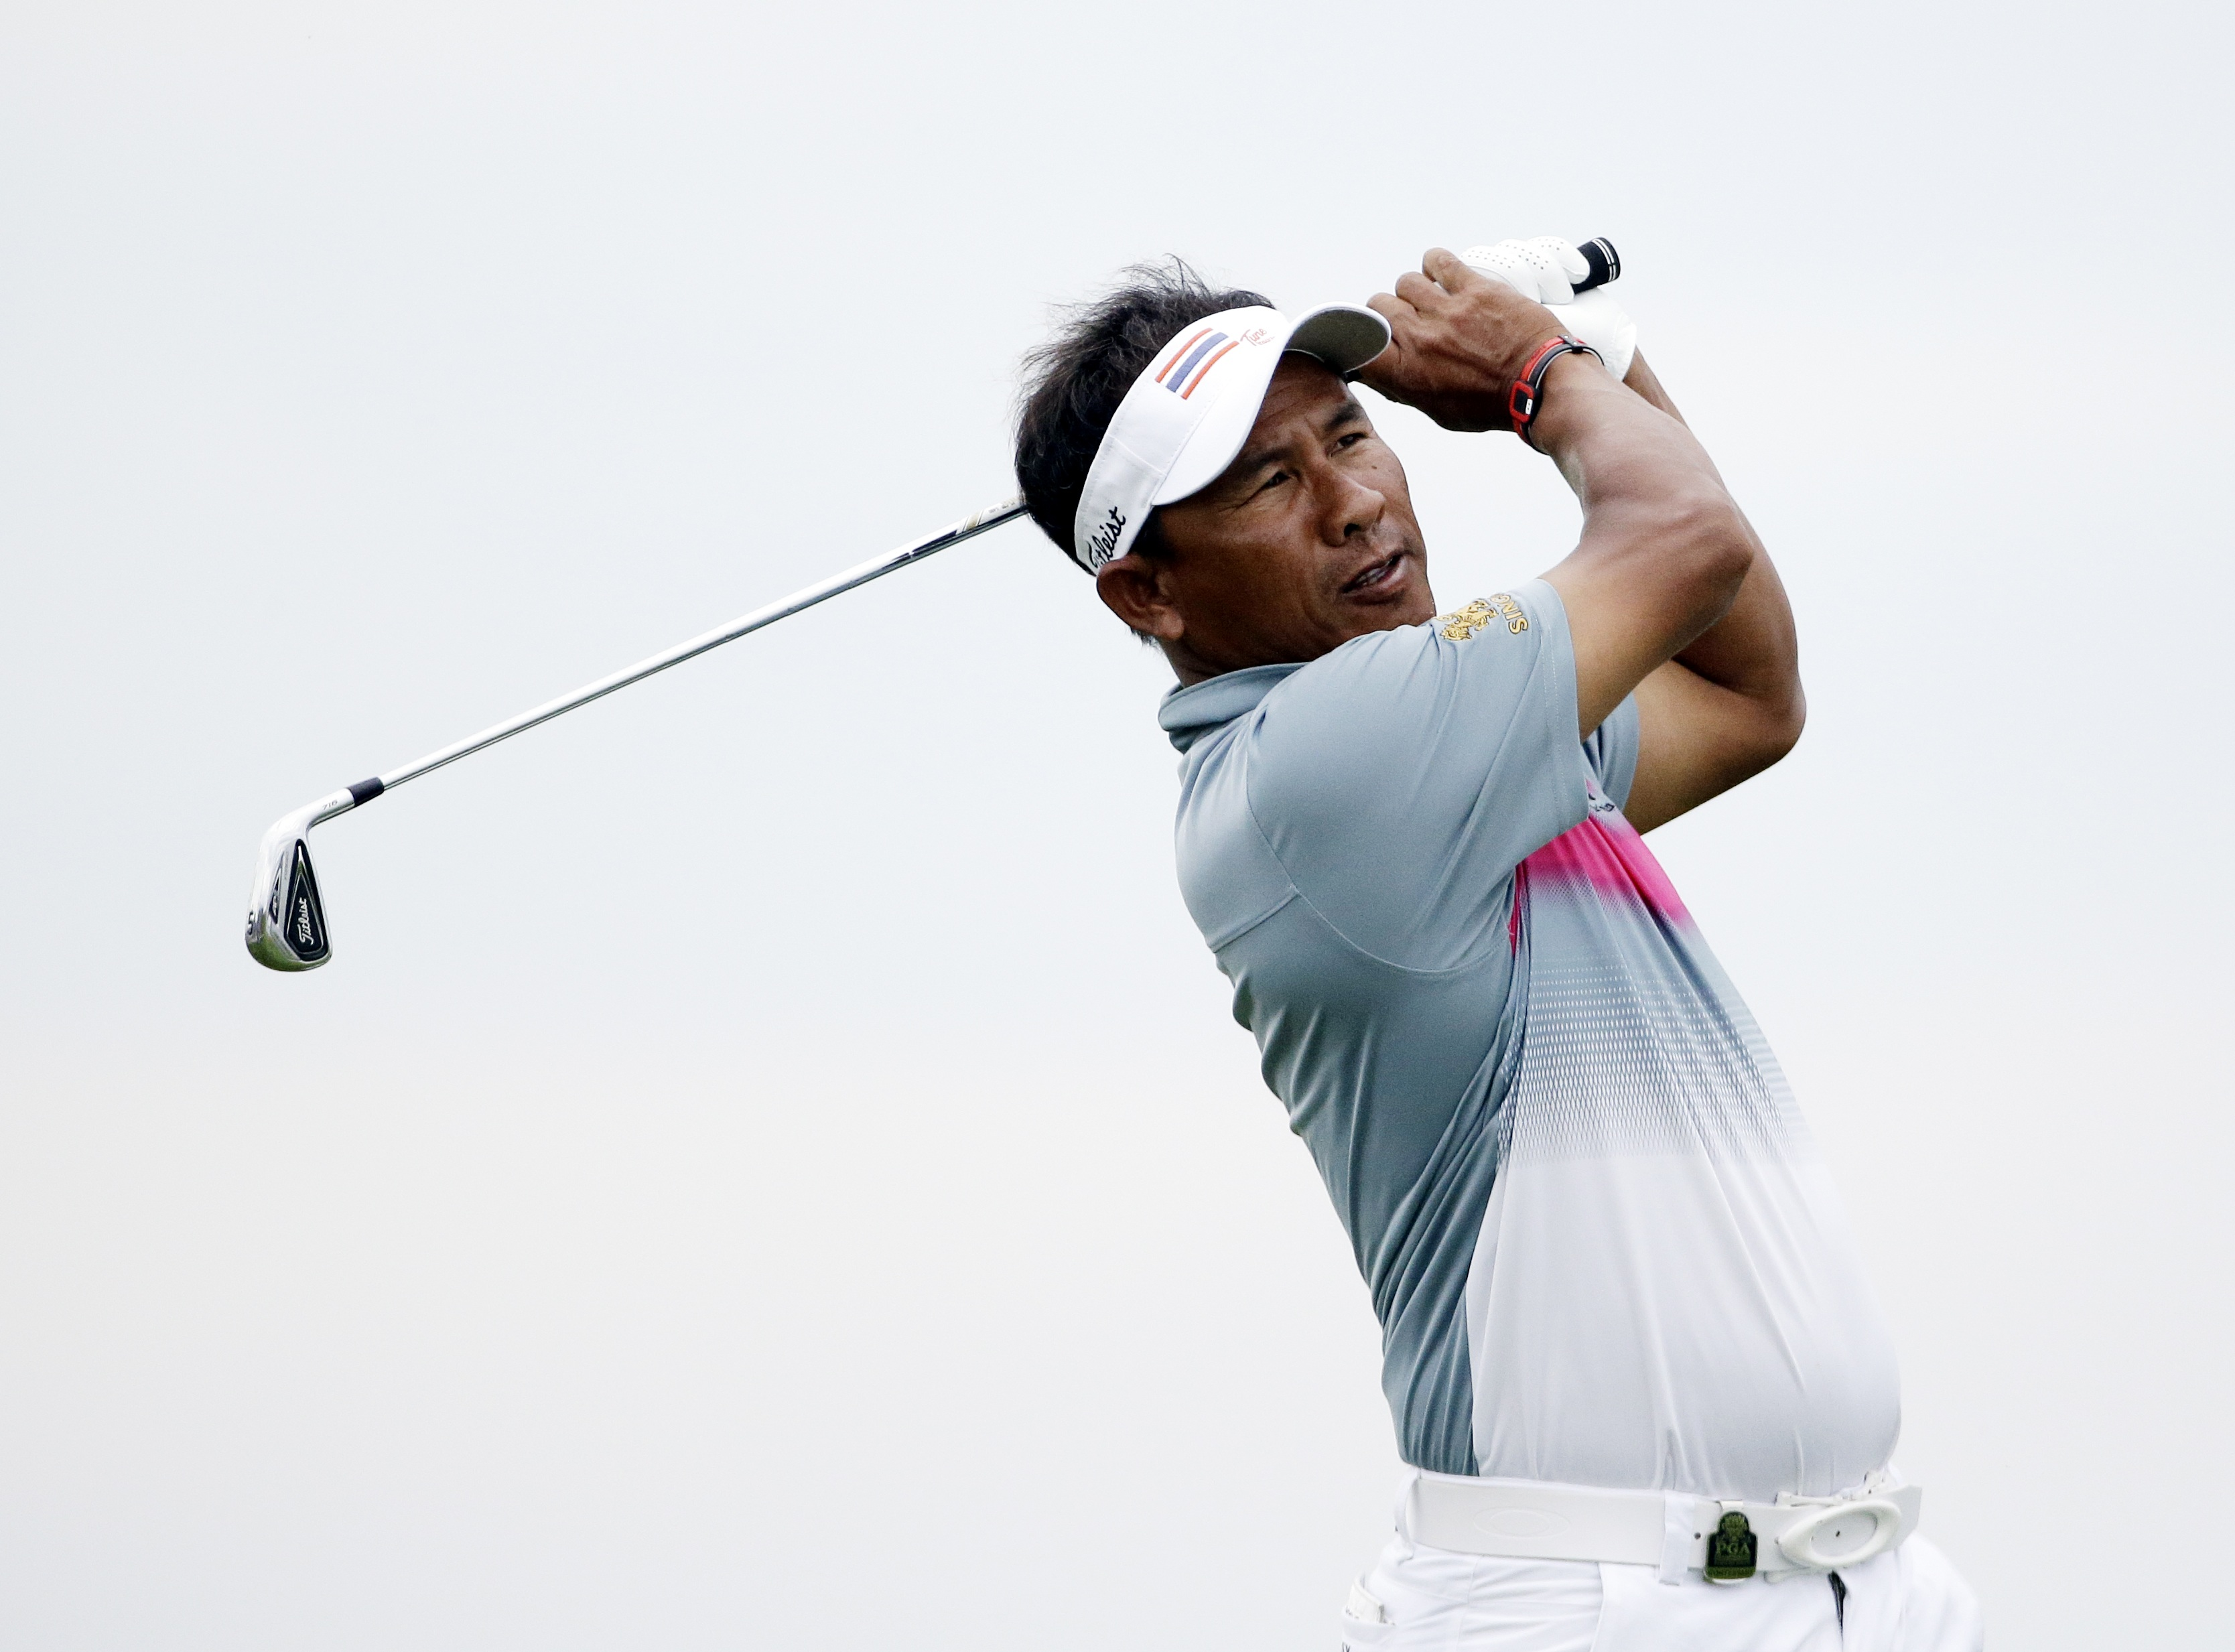 Thongchai Jaidee, of Thailand, on the third hole during the first round of the PGA Championship golf tournament Thursday, Aug. 13, 2015, at Whistling Straits in Haven, Wis. (AP Photo/Brynn